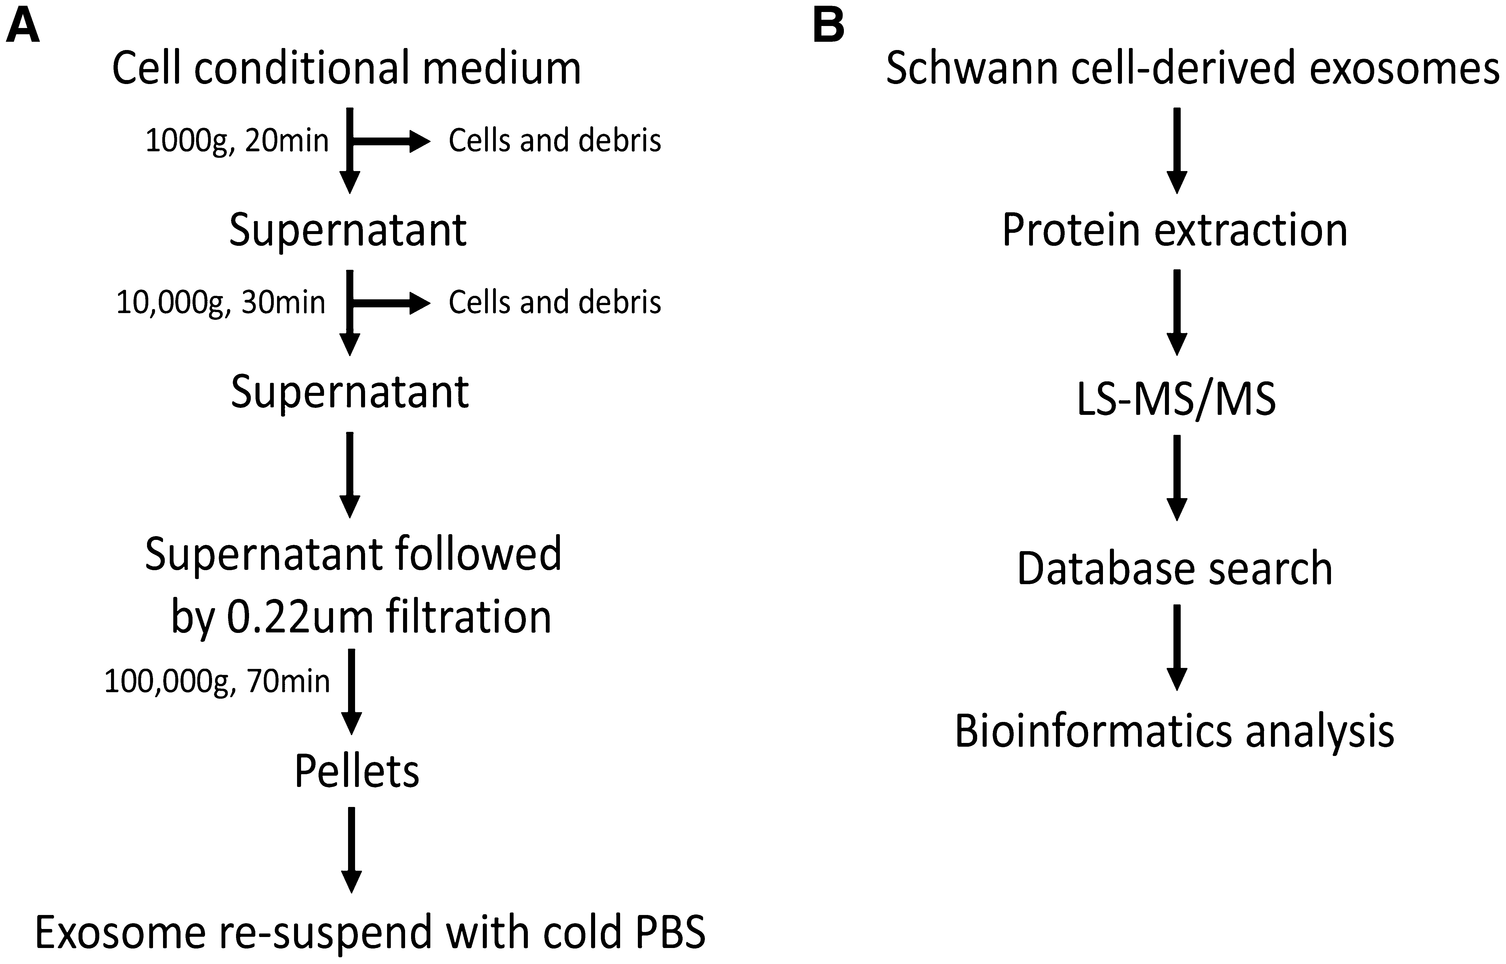 c07d82adbca1 Proteomics analysis of Schwann cell-derived exosomes  a novel ...